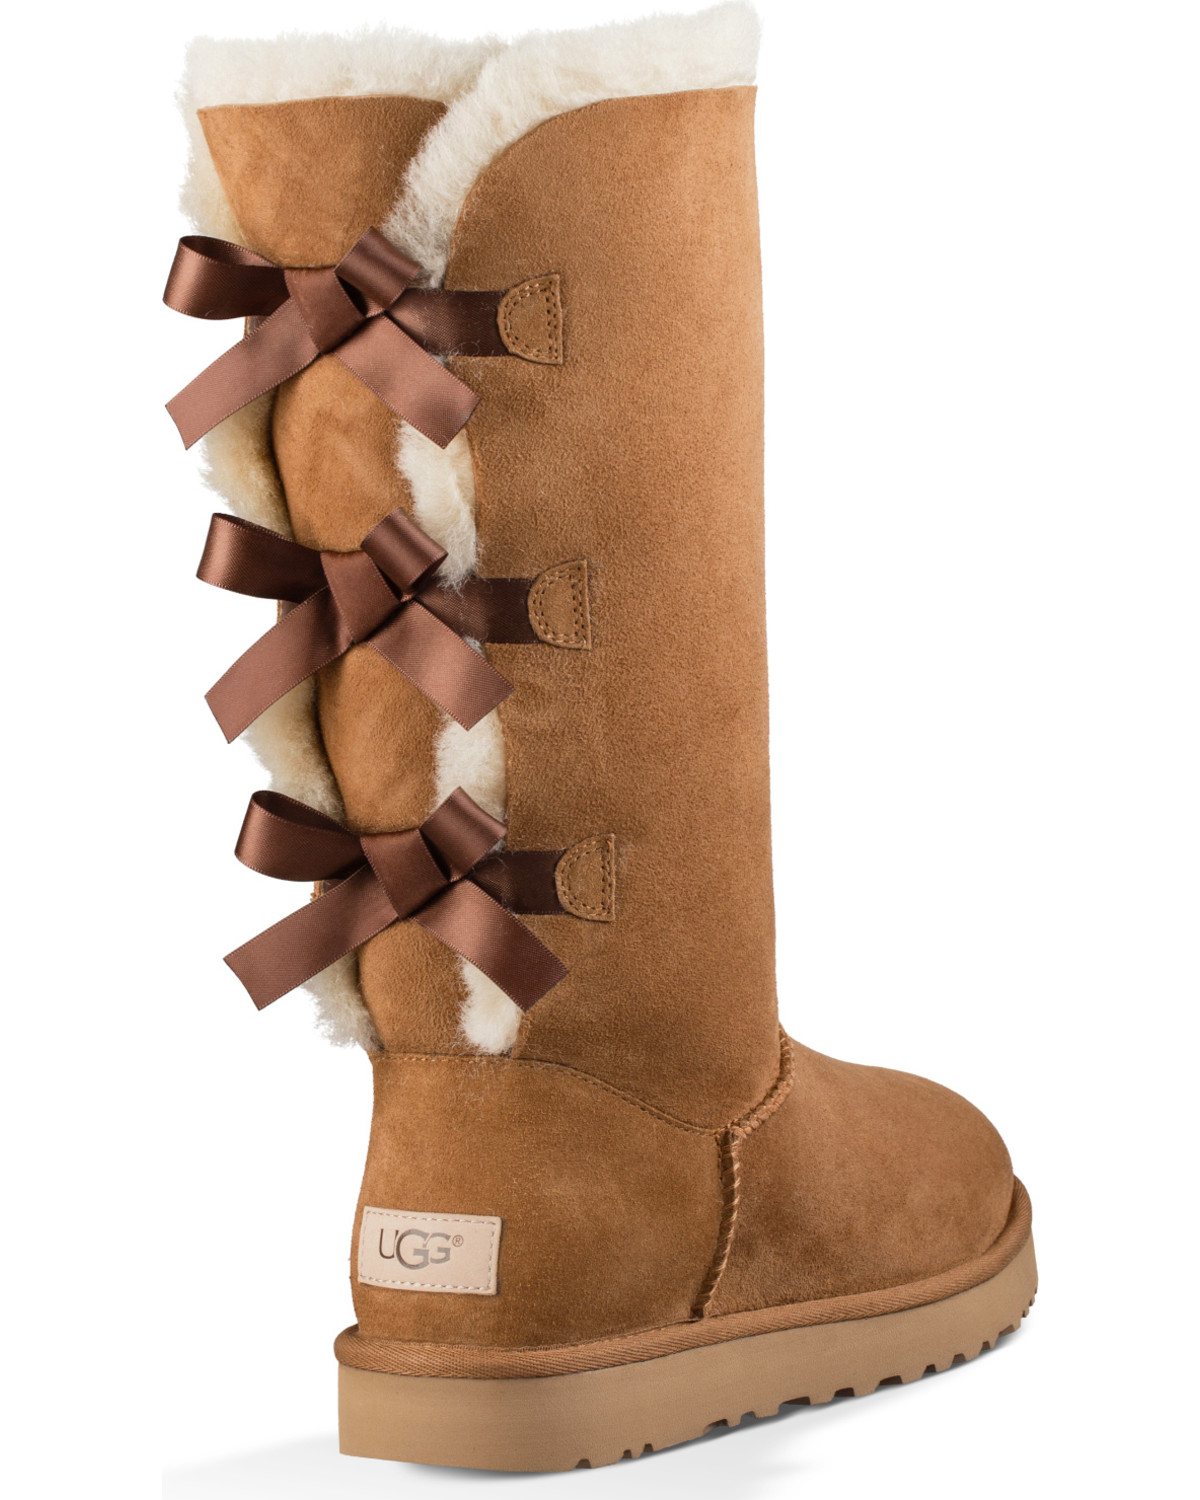 Boots ugg womens with bows recommend dress in everyday in 2019